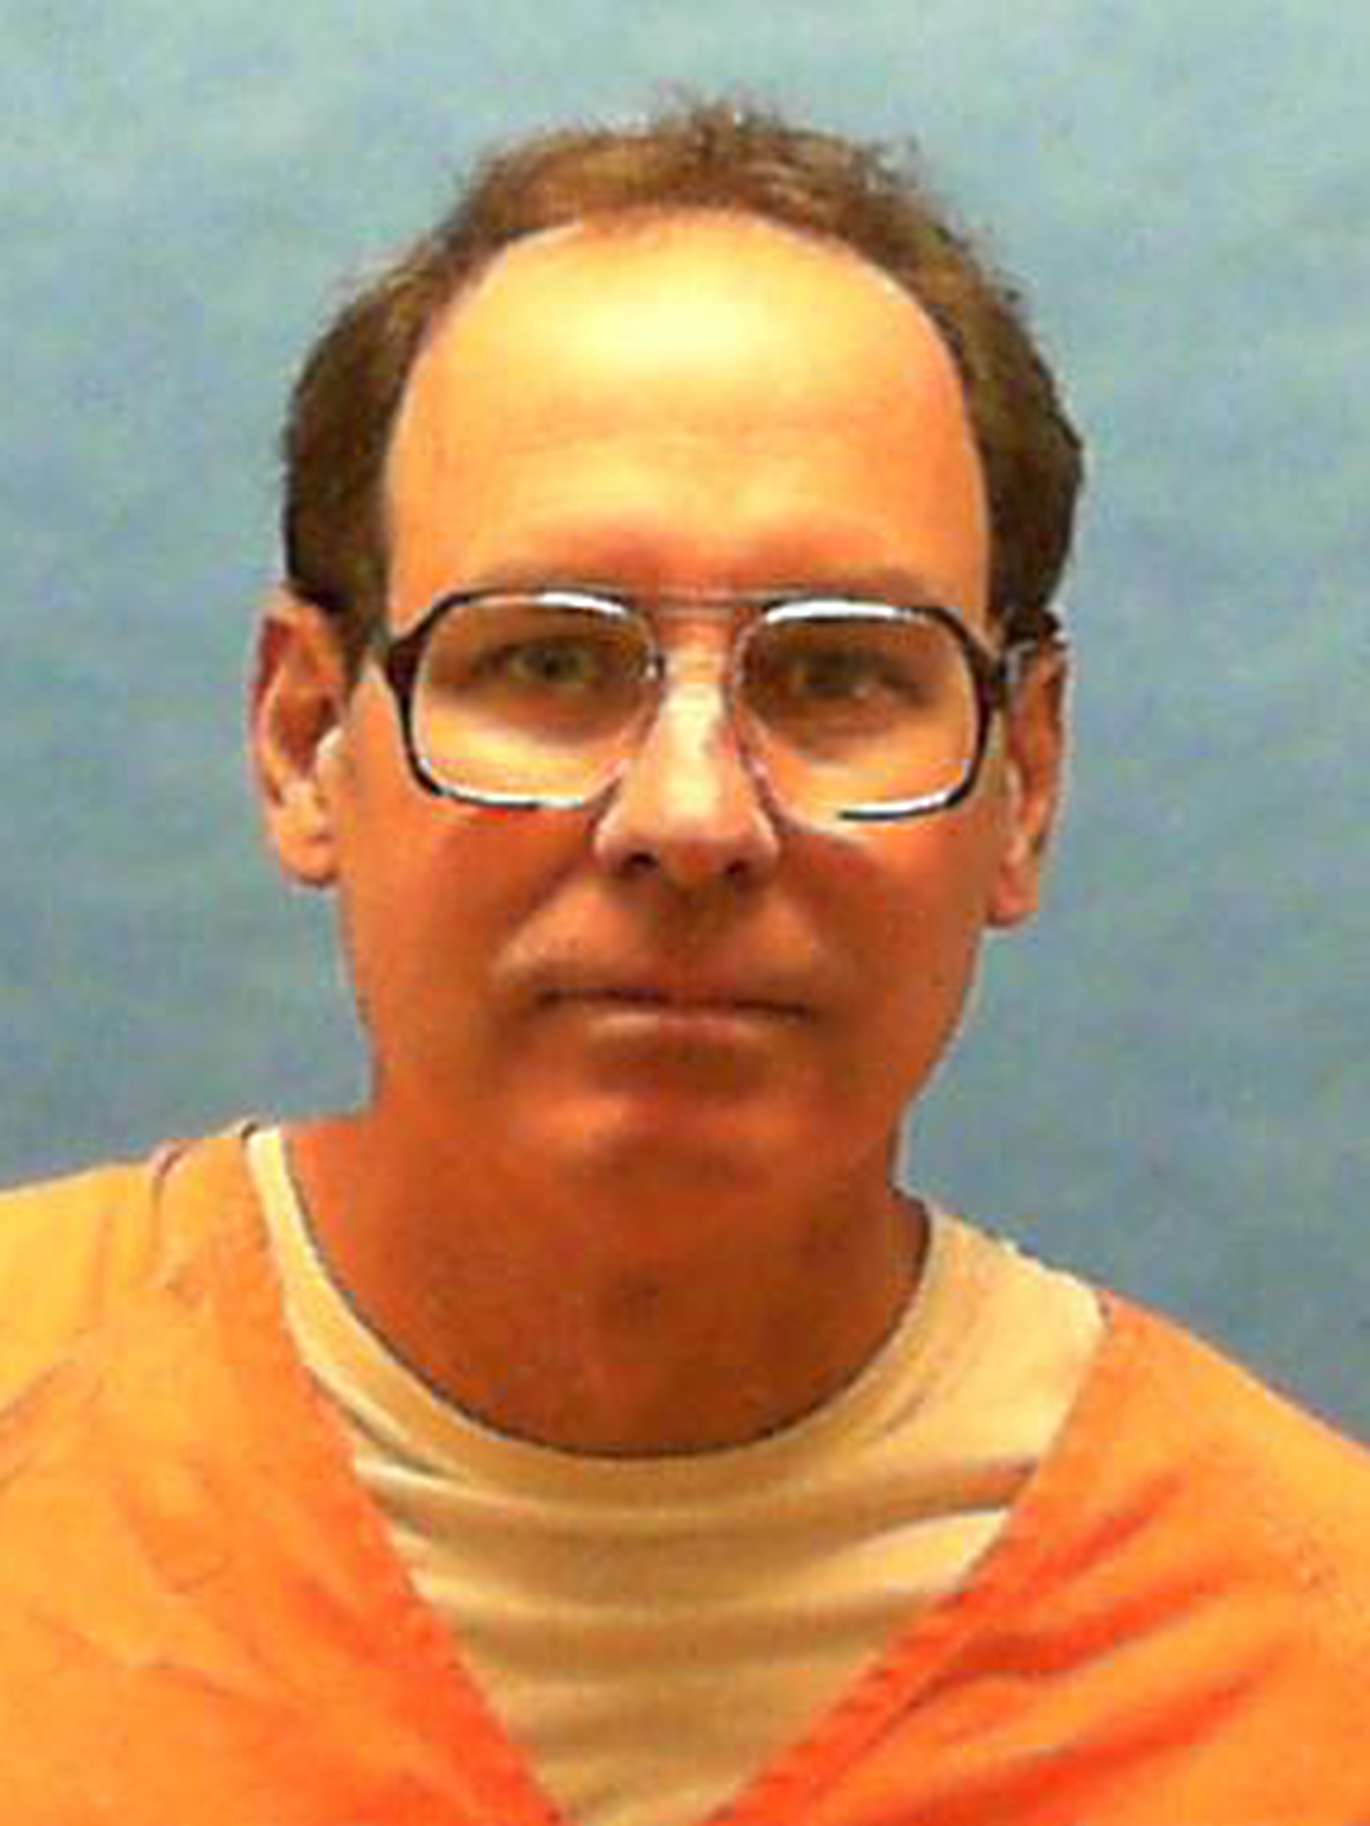 Richard Shere began his sentence in May 1989 for the murder of his friend Drew Snyder on Christmas Day 1987. He and accomplice Bruce Demo shot Snyder after he disclosed the illegal activities of both Shere and Demo.